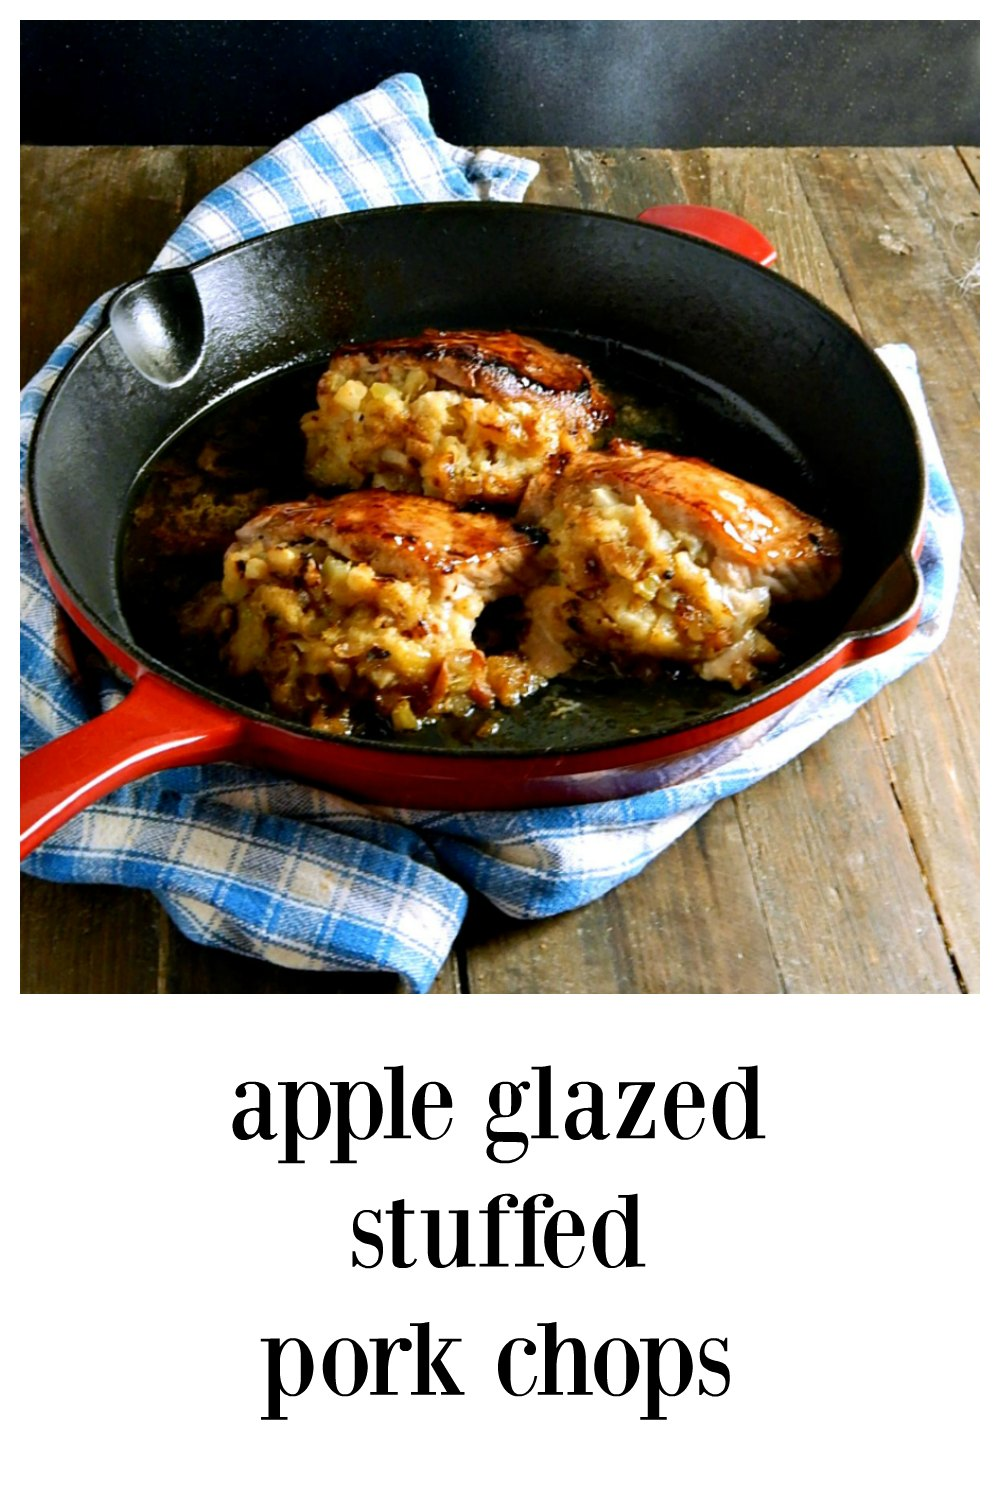 Apple Glazed Stuffed Pork Chops are brined, stuffed, then glazed for a gorgeous presentation. Everyday ingredients transformed! One of our fave birthday or special occasion dinners. #StuffedPorkChops #AppleGlazedStuffedPorkChops #PorkChopsApple #PorkChops